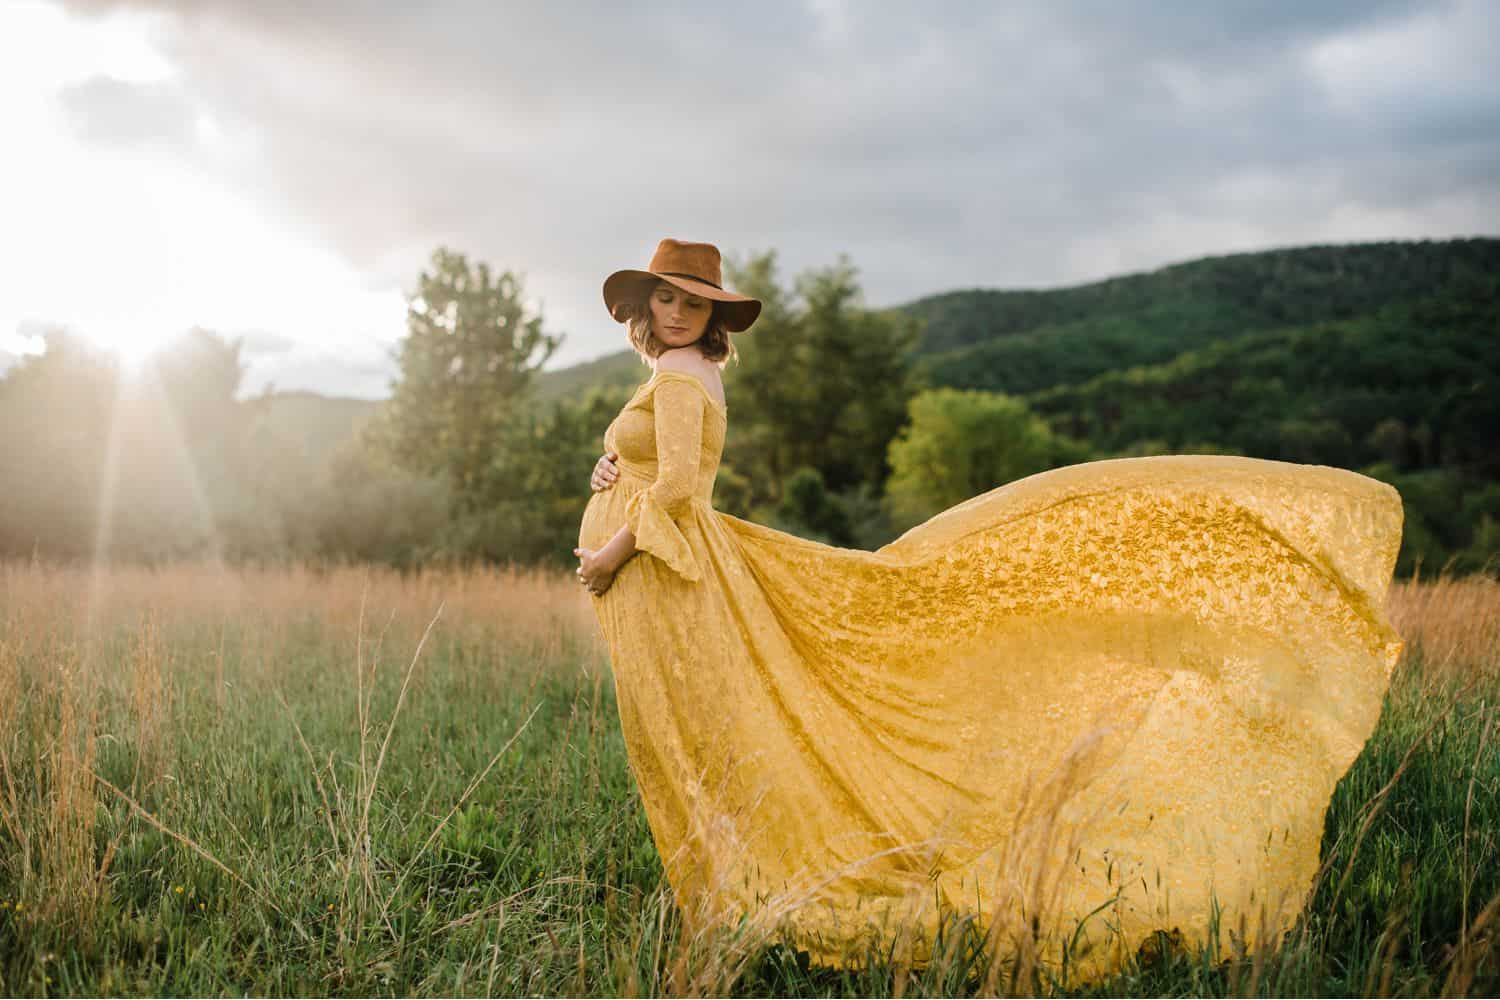 Maternity Poses: Full-length portrait of a pregnant woman in a yellow lace dress wearing a brown felt hat in an overgrown field. Her dress is flowing behind her and she is cradling her belly.